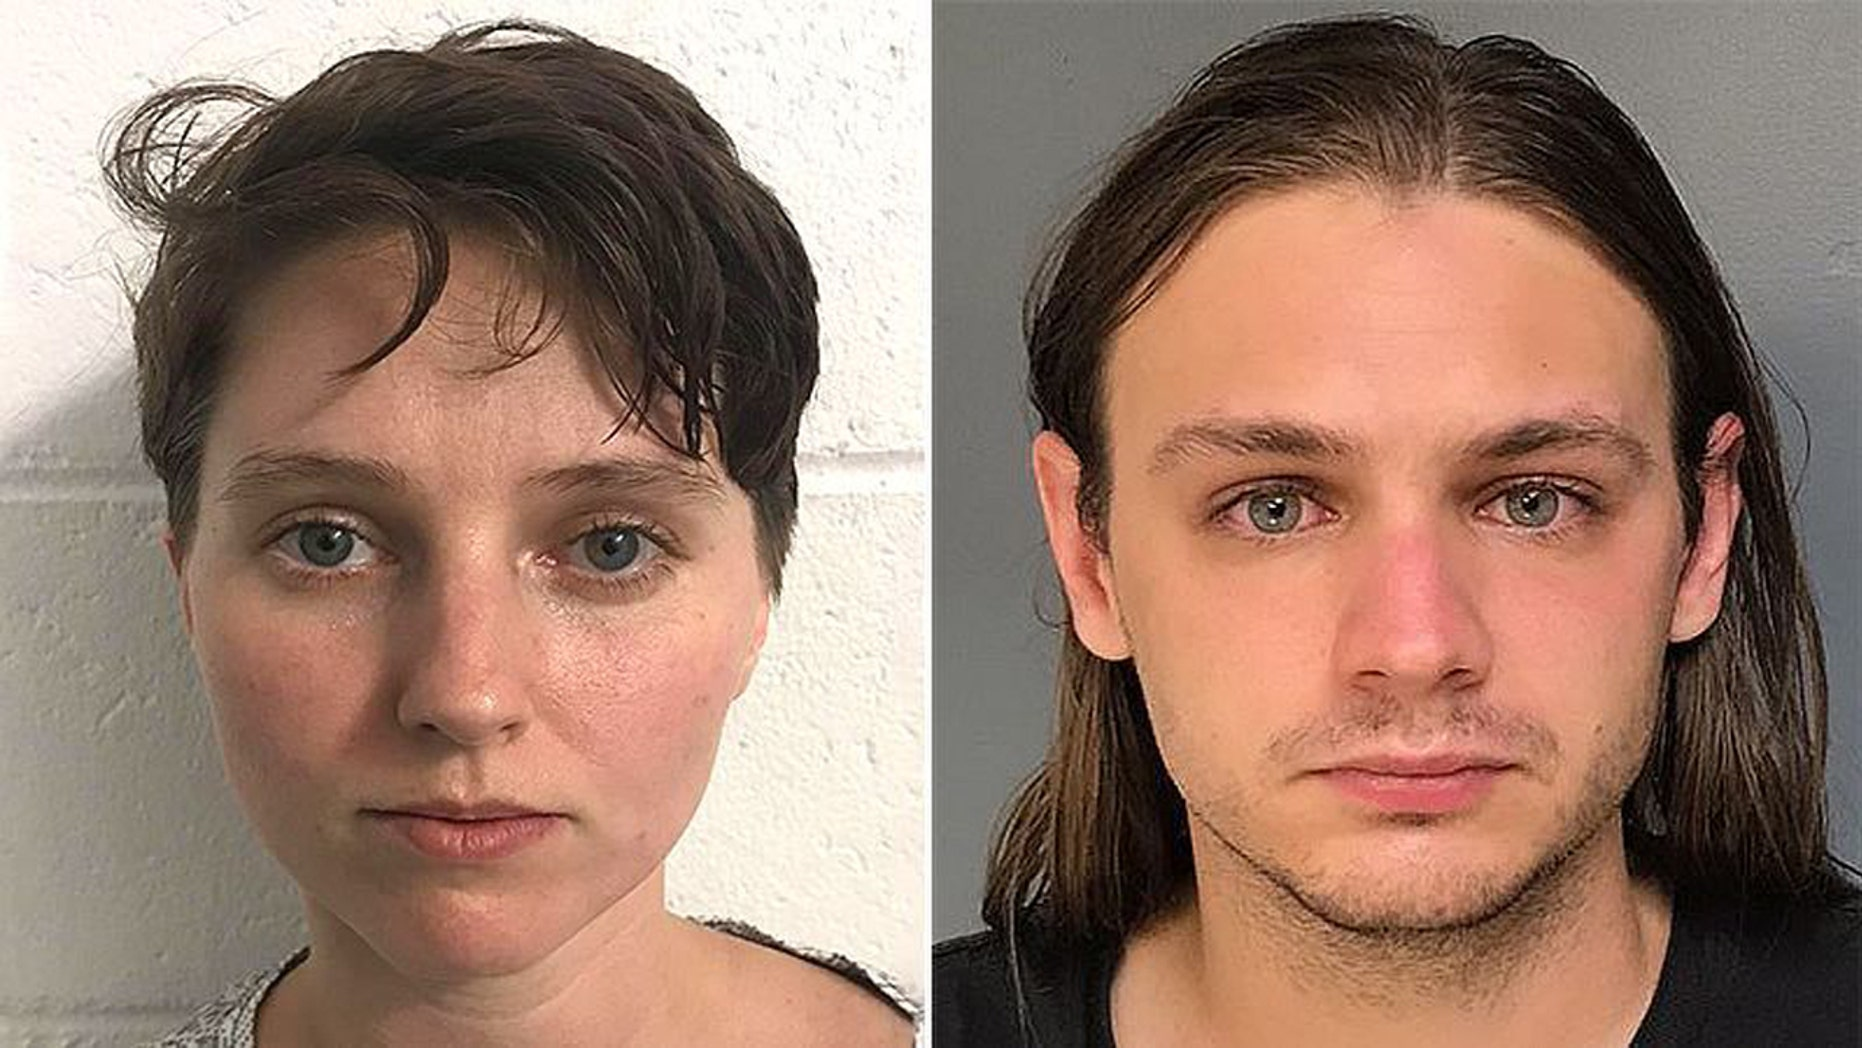 Kayla Parker (R) and her ex-boyfriend David Carbonaro (L) are pictured in these undated mugshots.